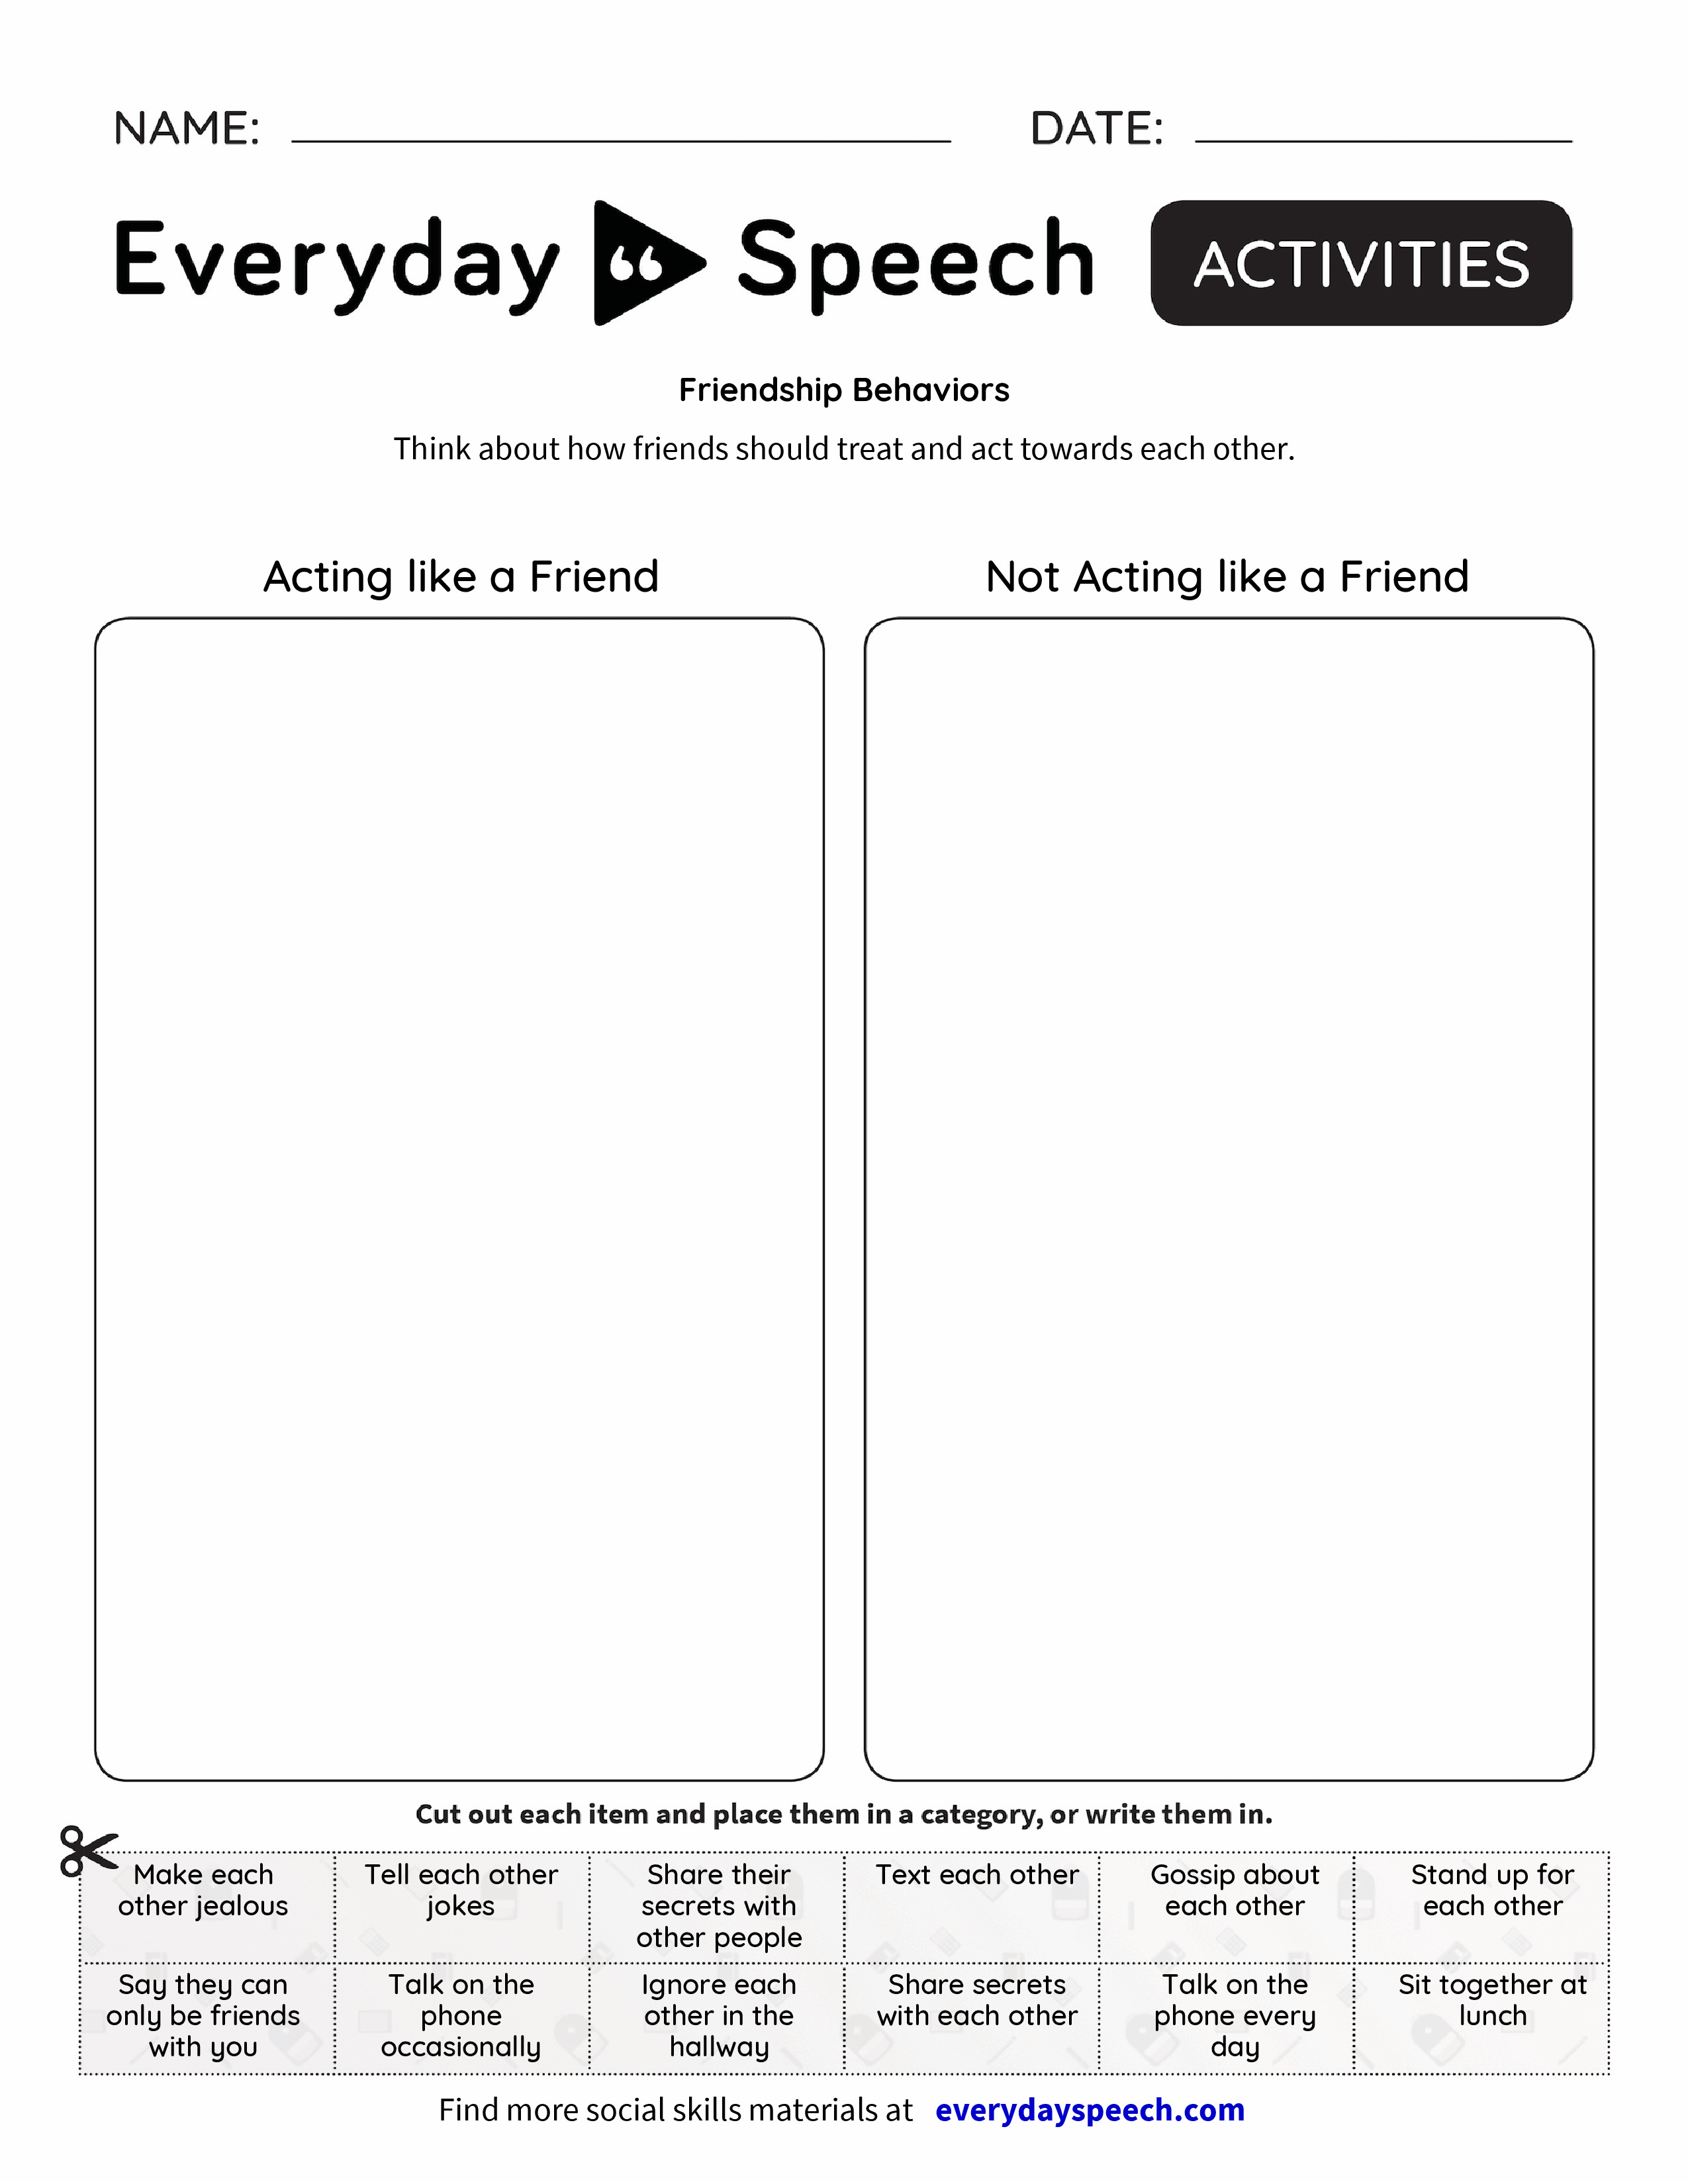 Friendship Behaviors Everyday Speech Everyday Speech